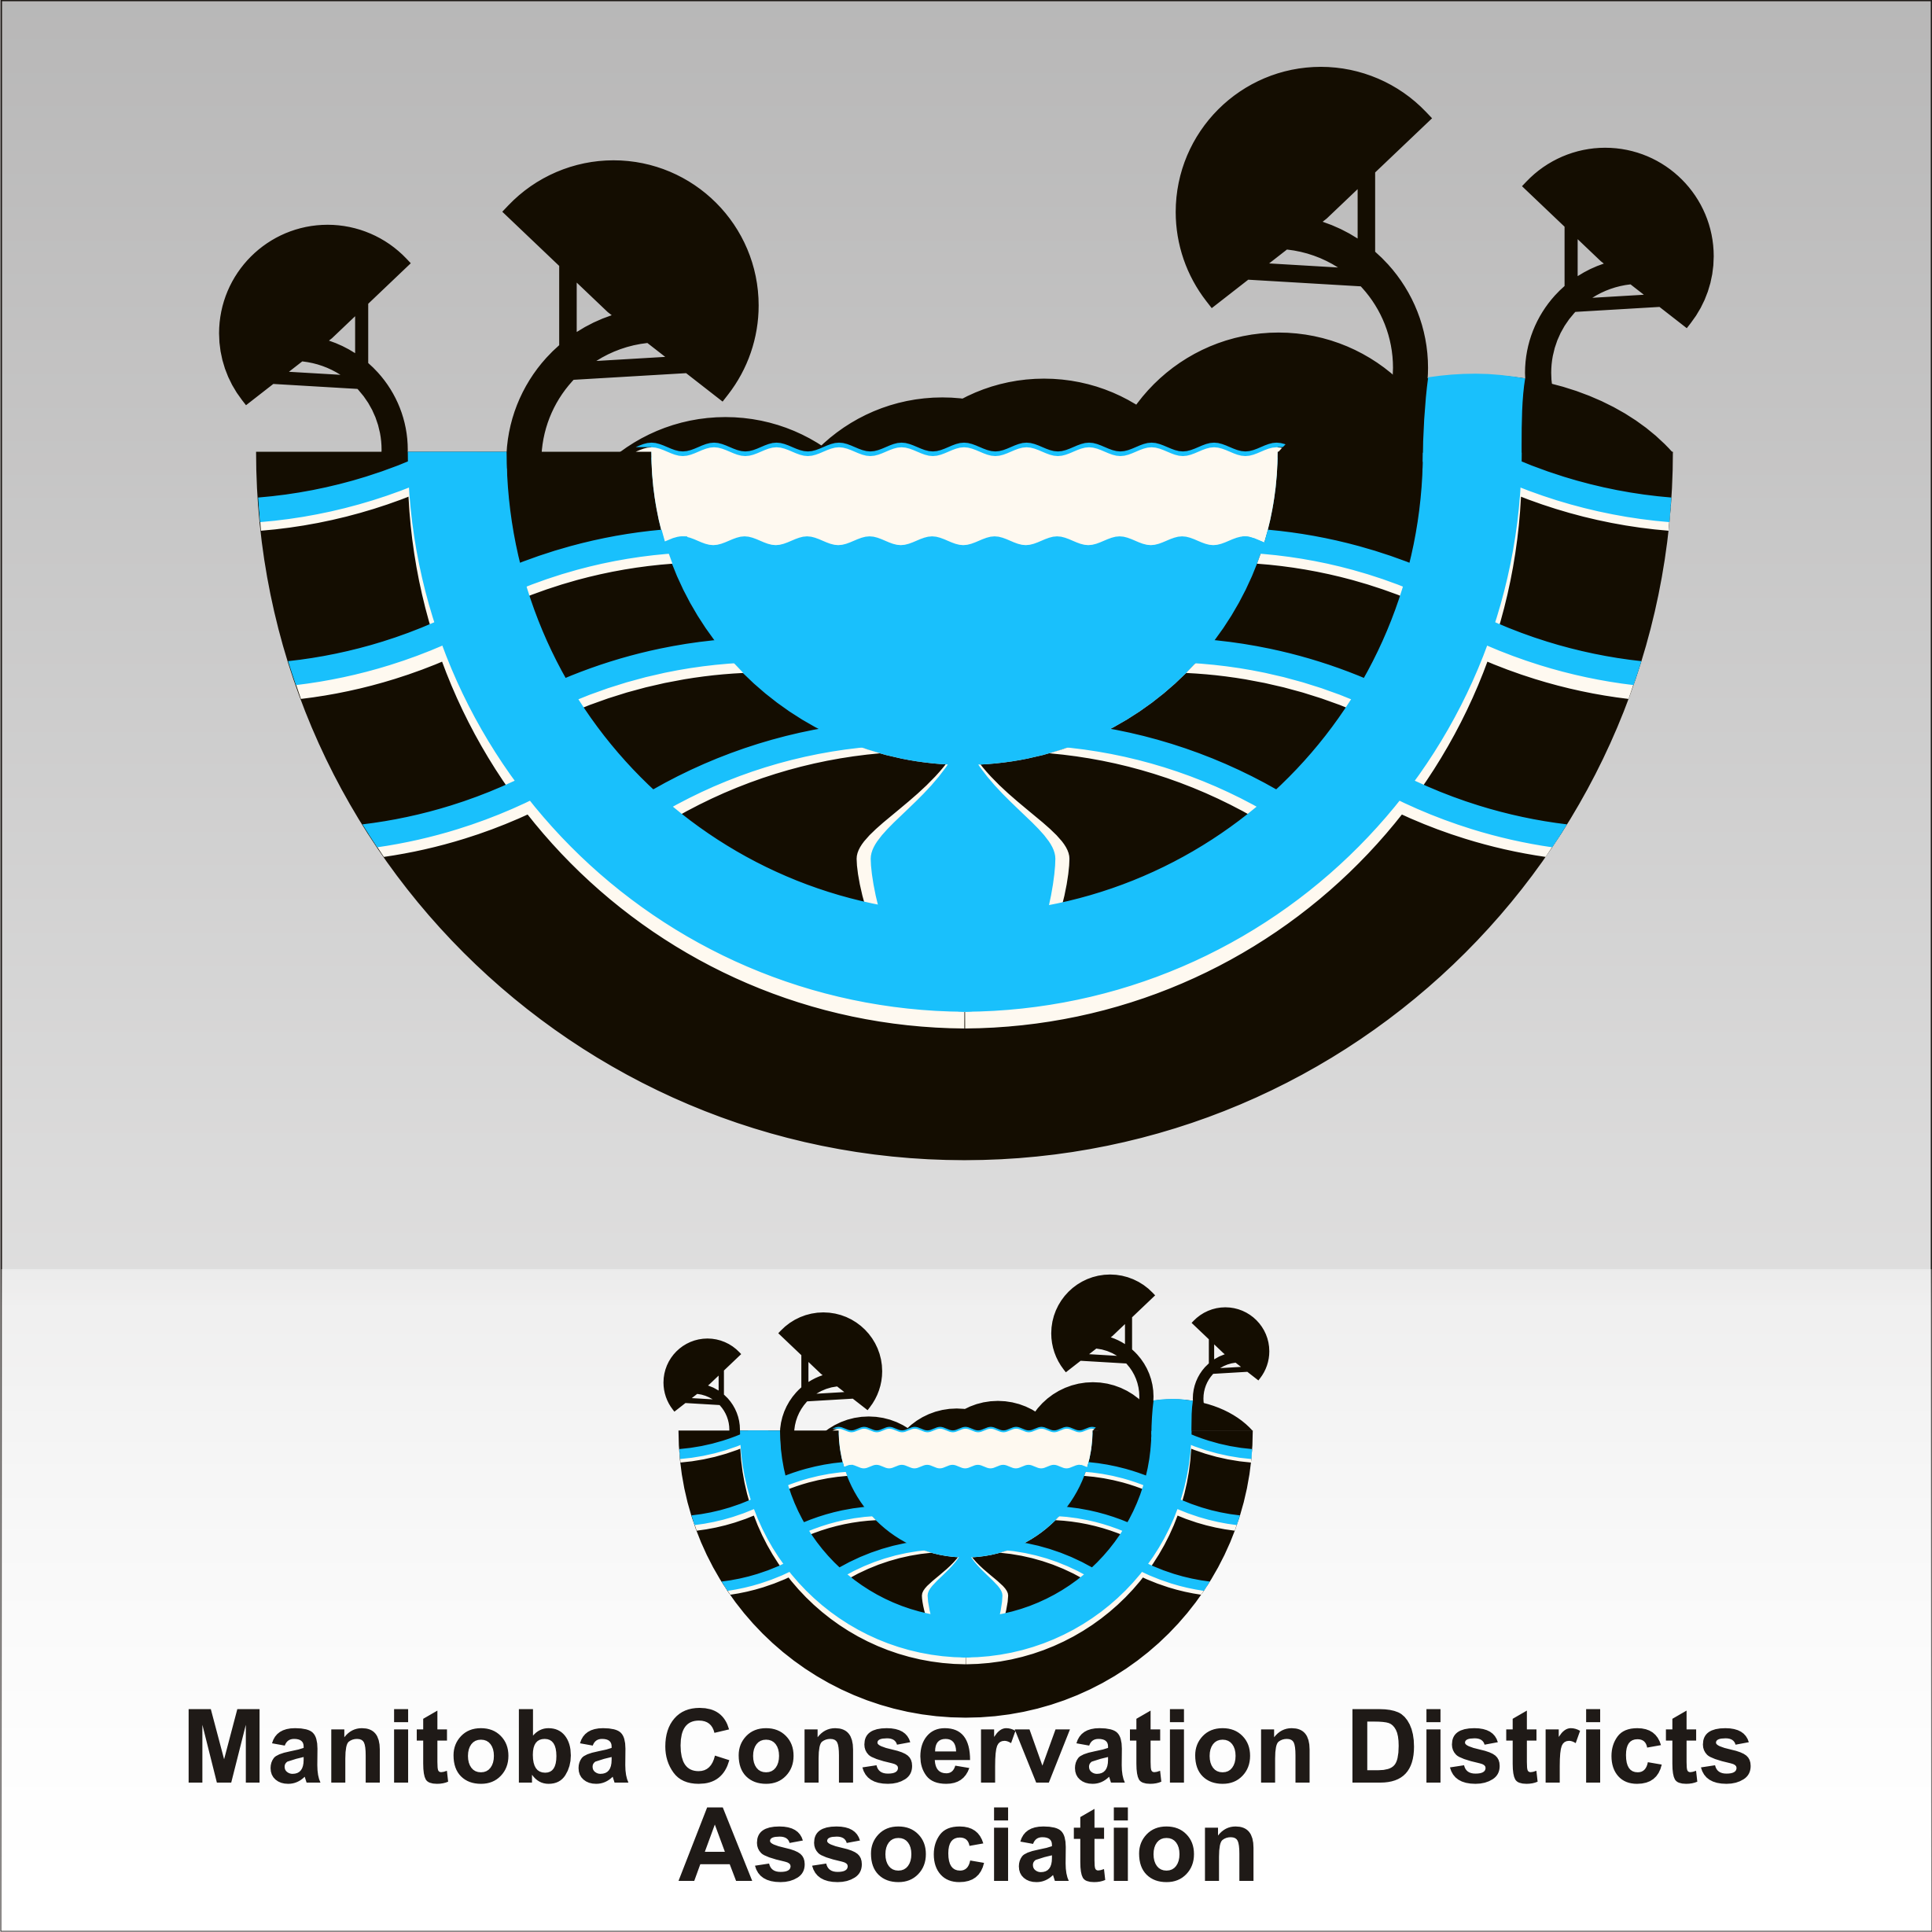 Logo Design by Private User - Entry No. 21 in the Logo Design Contest Manitoba Conservation Districts Logo Design.